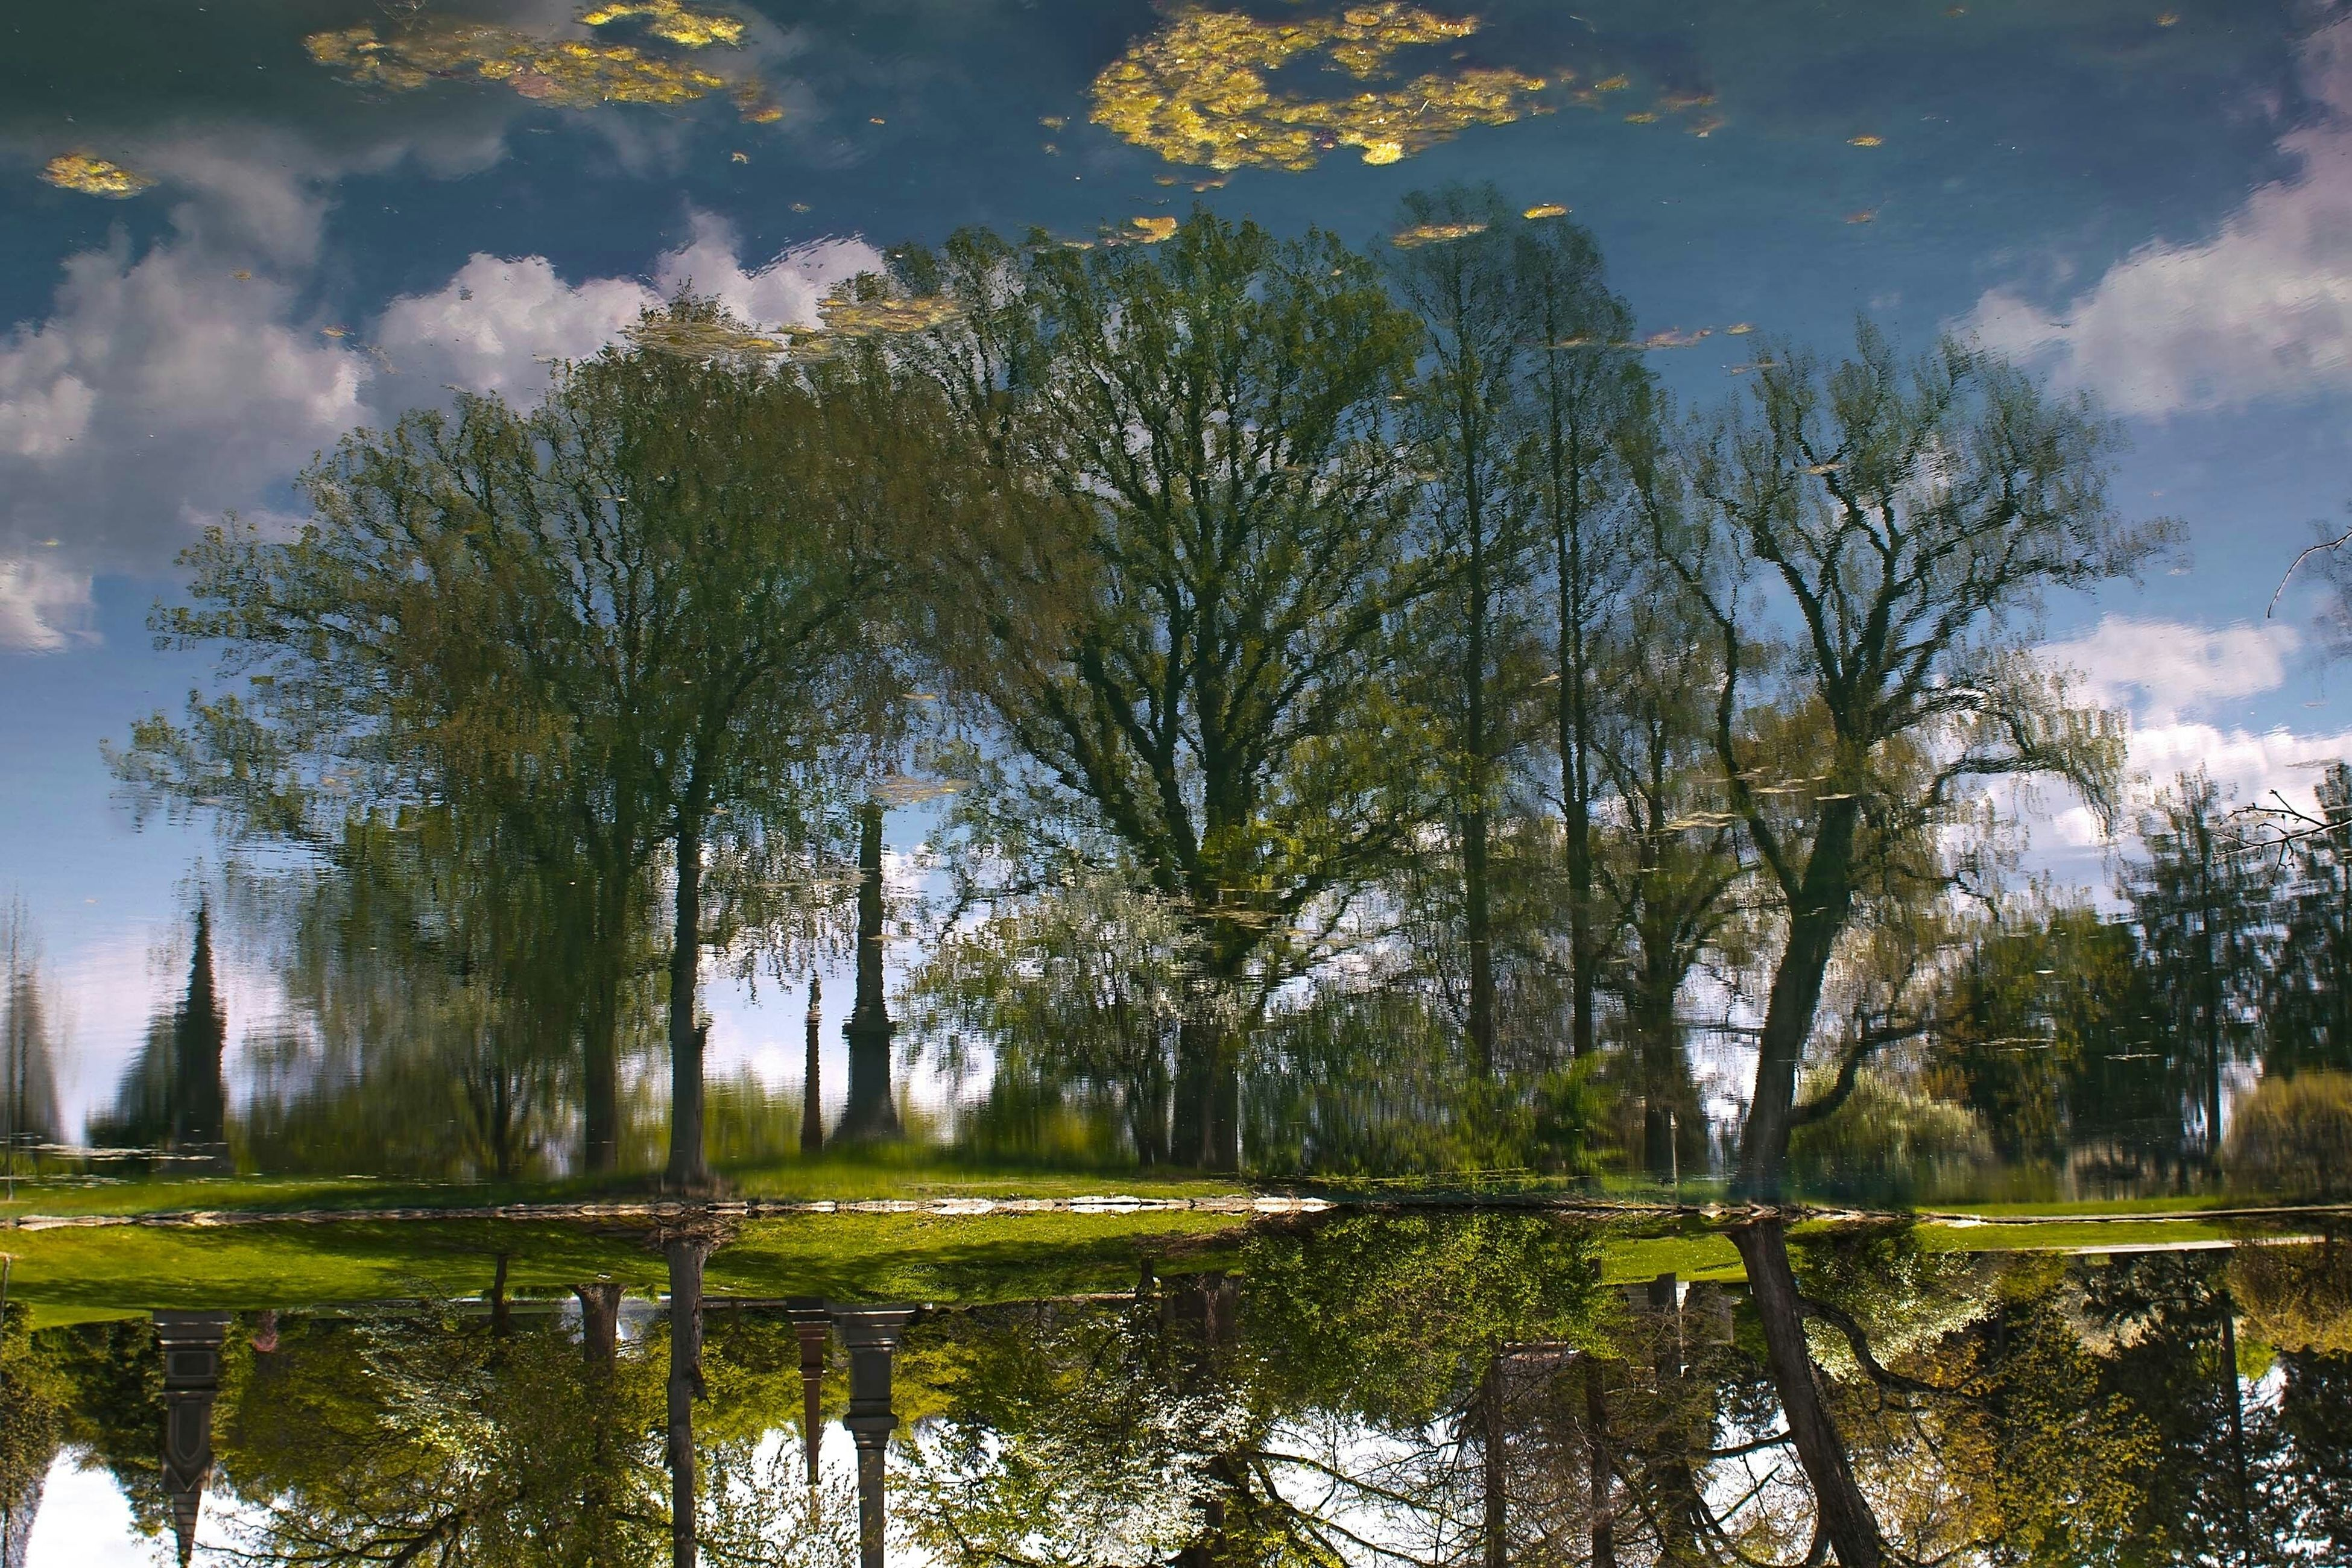 tree, reflection, water, lake, tranquility, tranquil scene, sky, nature, beauty in nature, waterfront, scenics, growth, pond, branch, standing water, green color, idyllic, outdoors, river, day